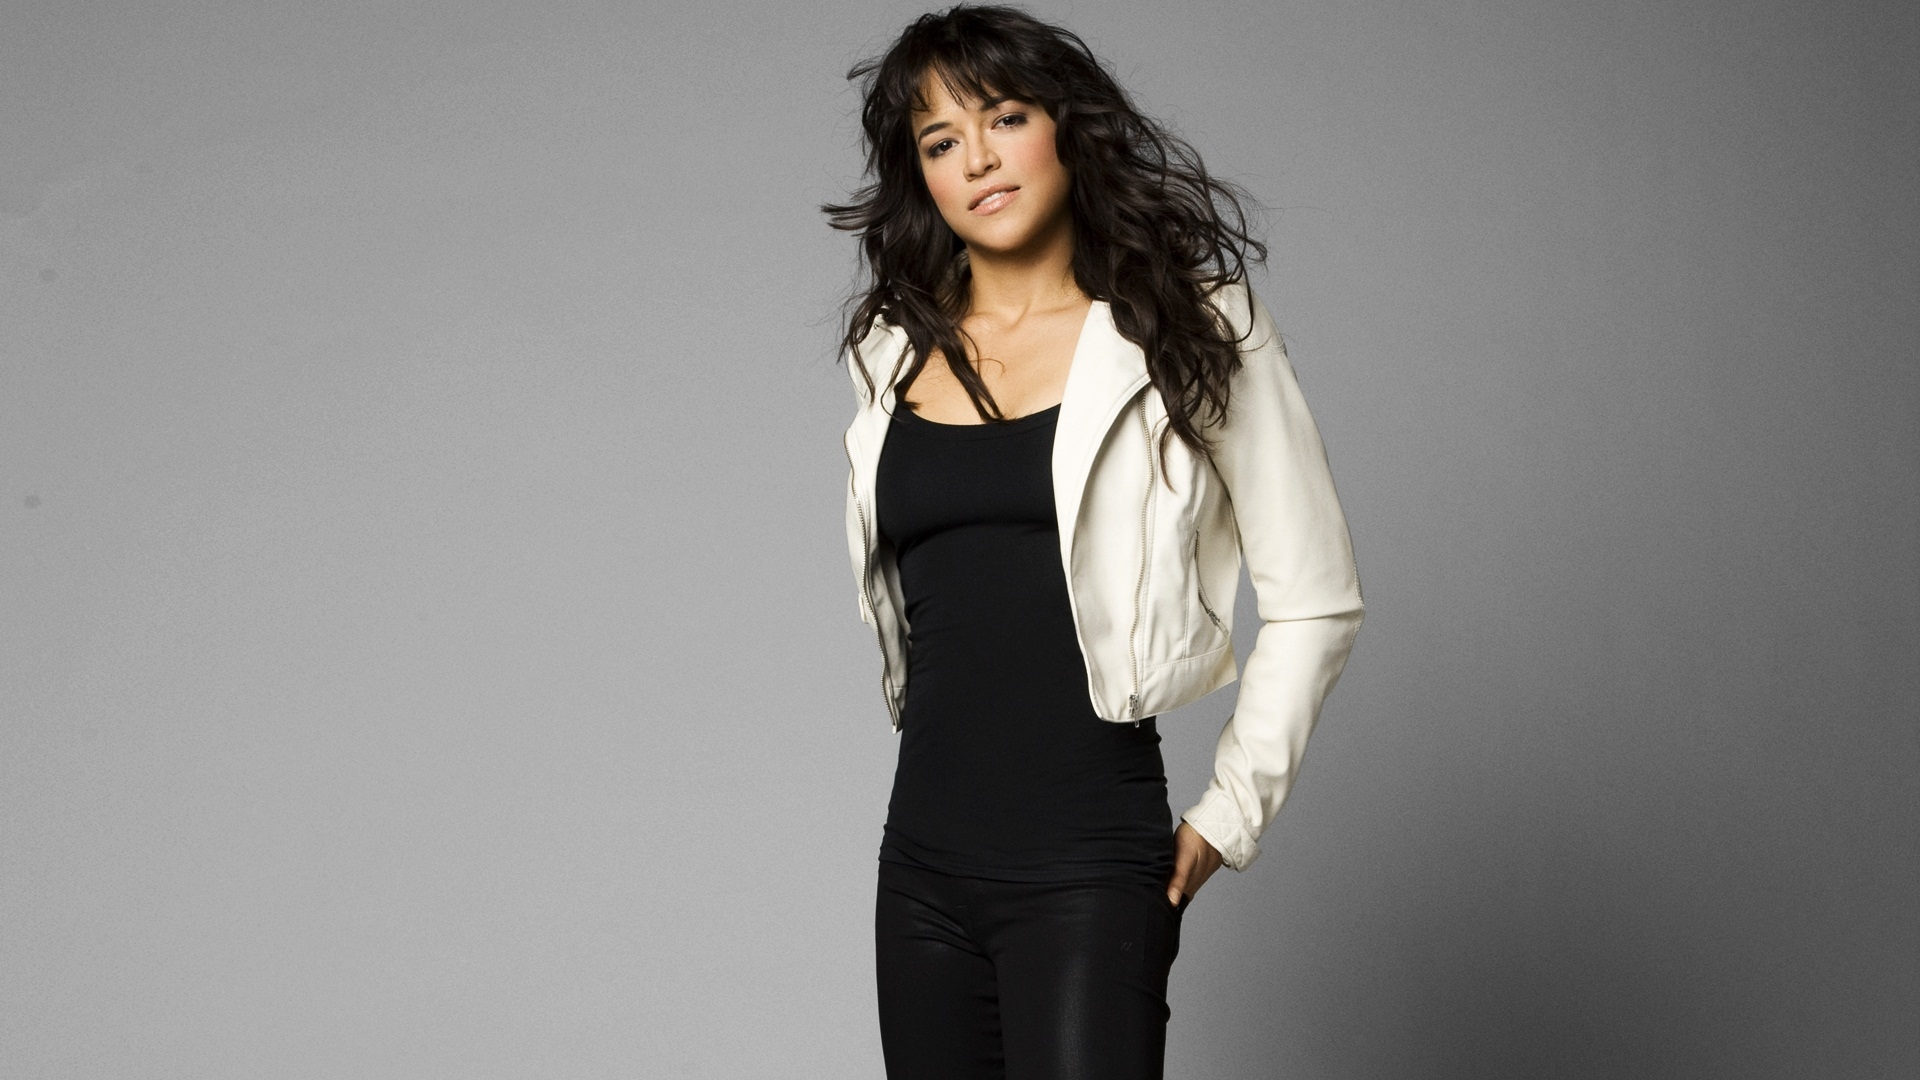 1920x1080 - Michelle Rodriguez Wallpapers 18